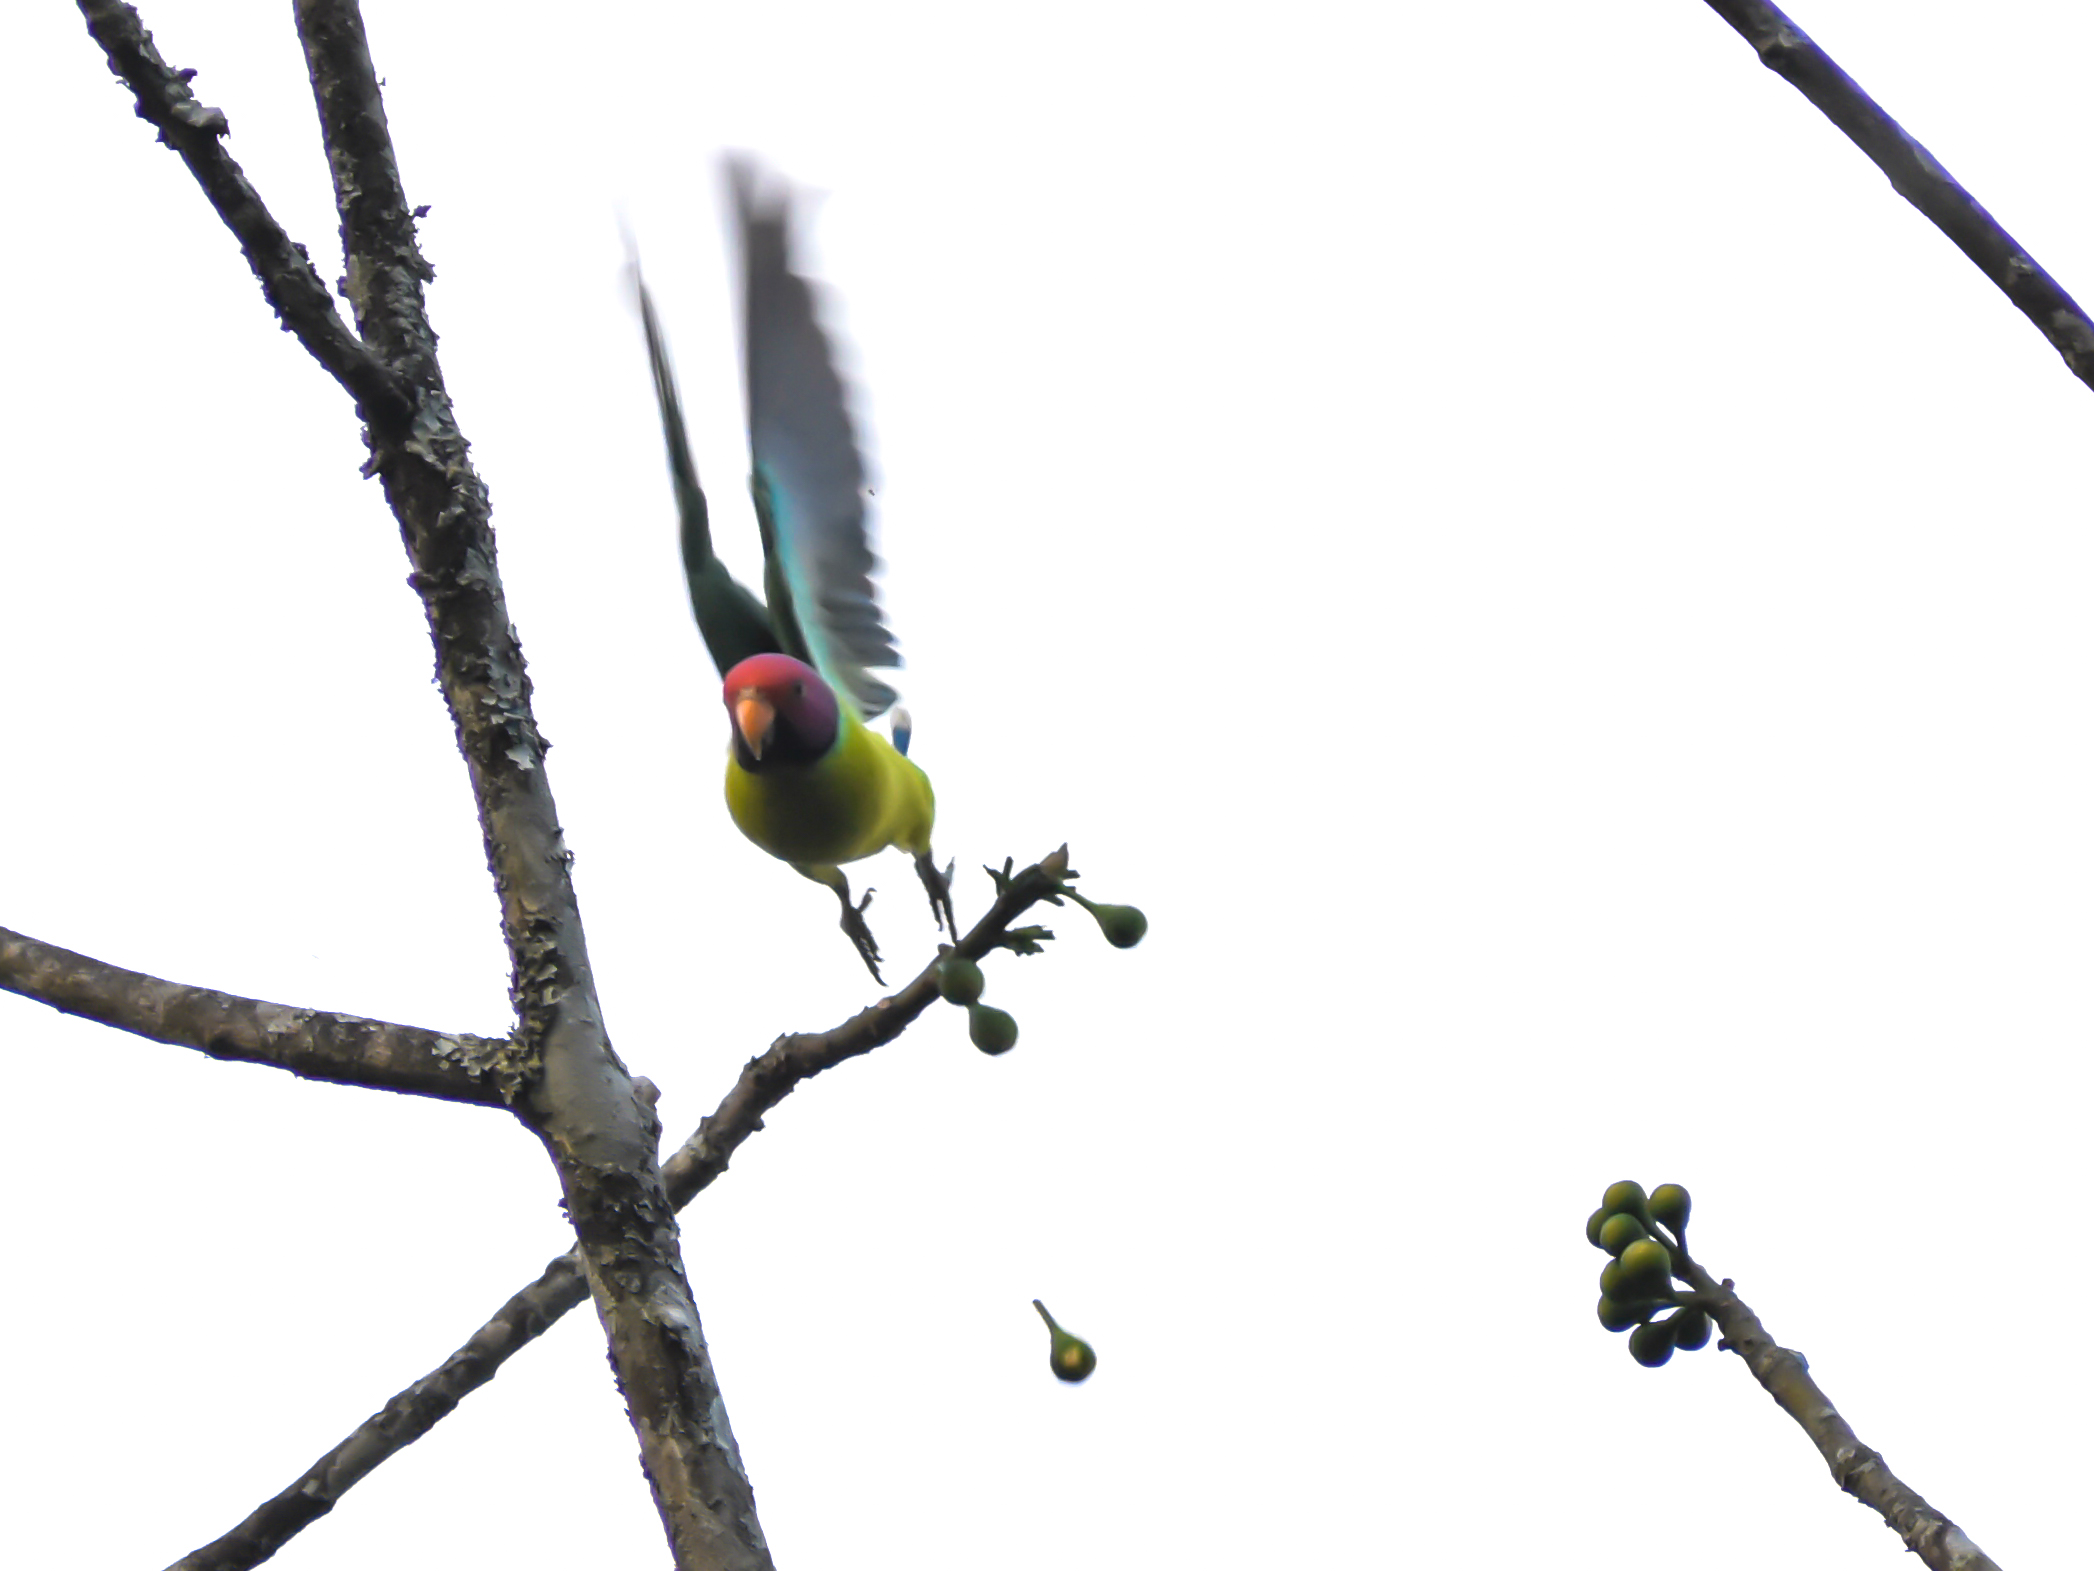 A parrot jumping from a twig